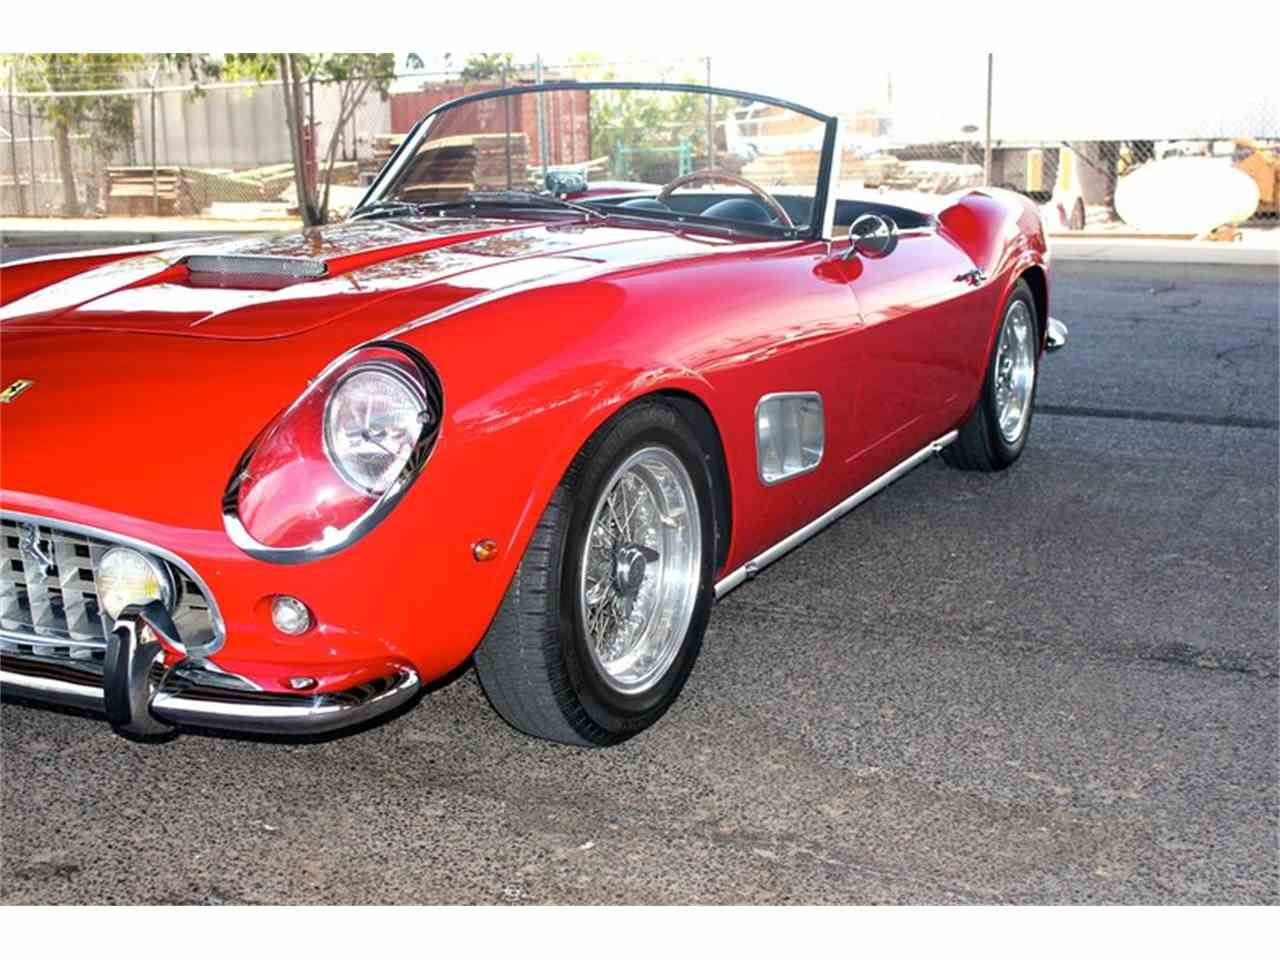 Large Picture of '63 Ferrari 250 GTE California Spyder Auction Vehicle Offered by EMG - J2E5